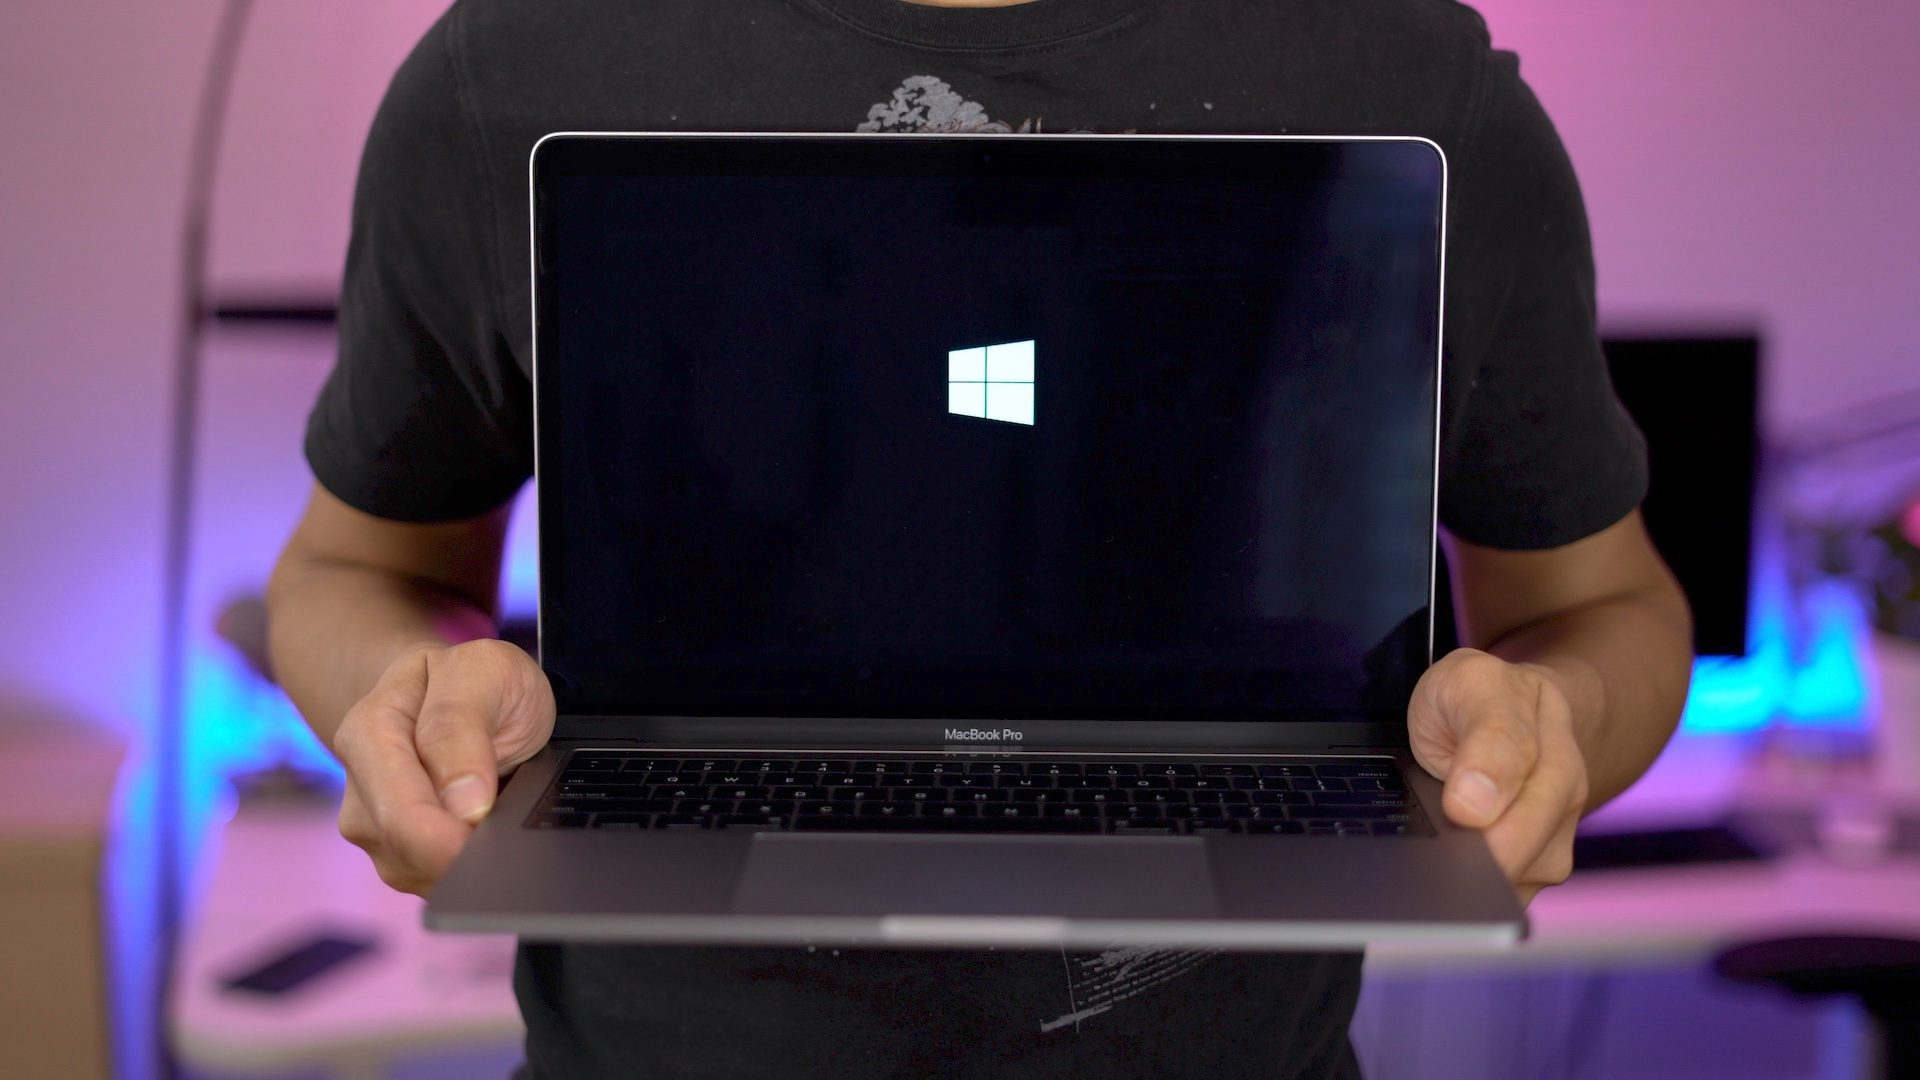 """<span href=""""https://9to5mac.com/2017/01/23/how-to-install-windows-10-mac-boot-camp-assistant-partition-video/"""">Cómo instalar Windows 10 en tu Mac con Boot Camp Assistant [Video]</a>"""